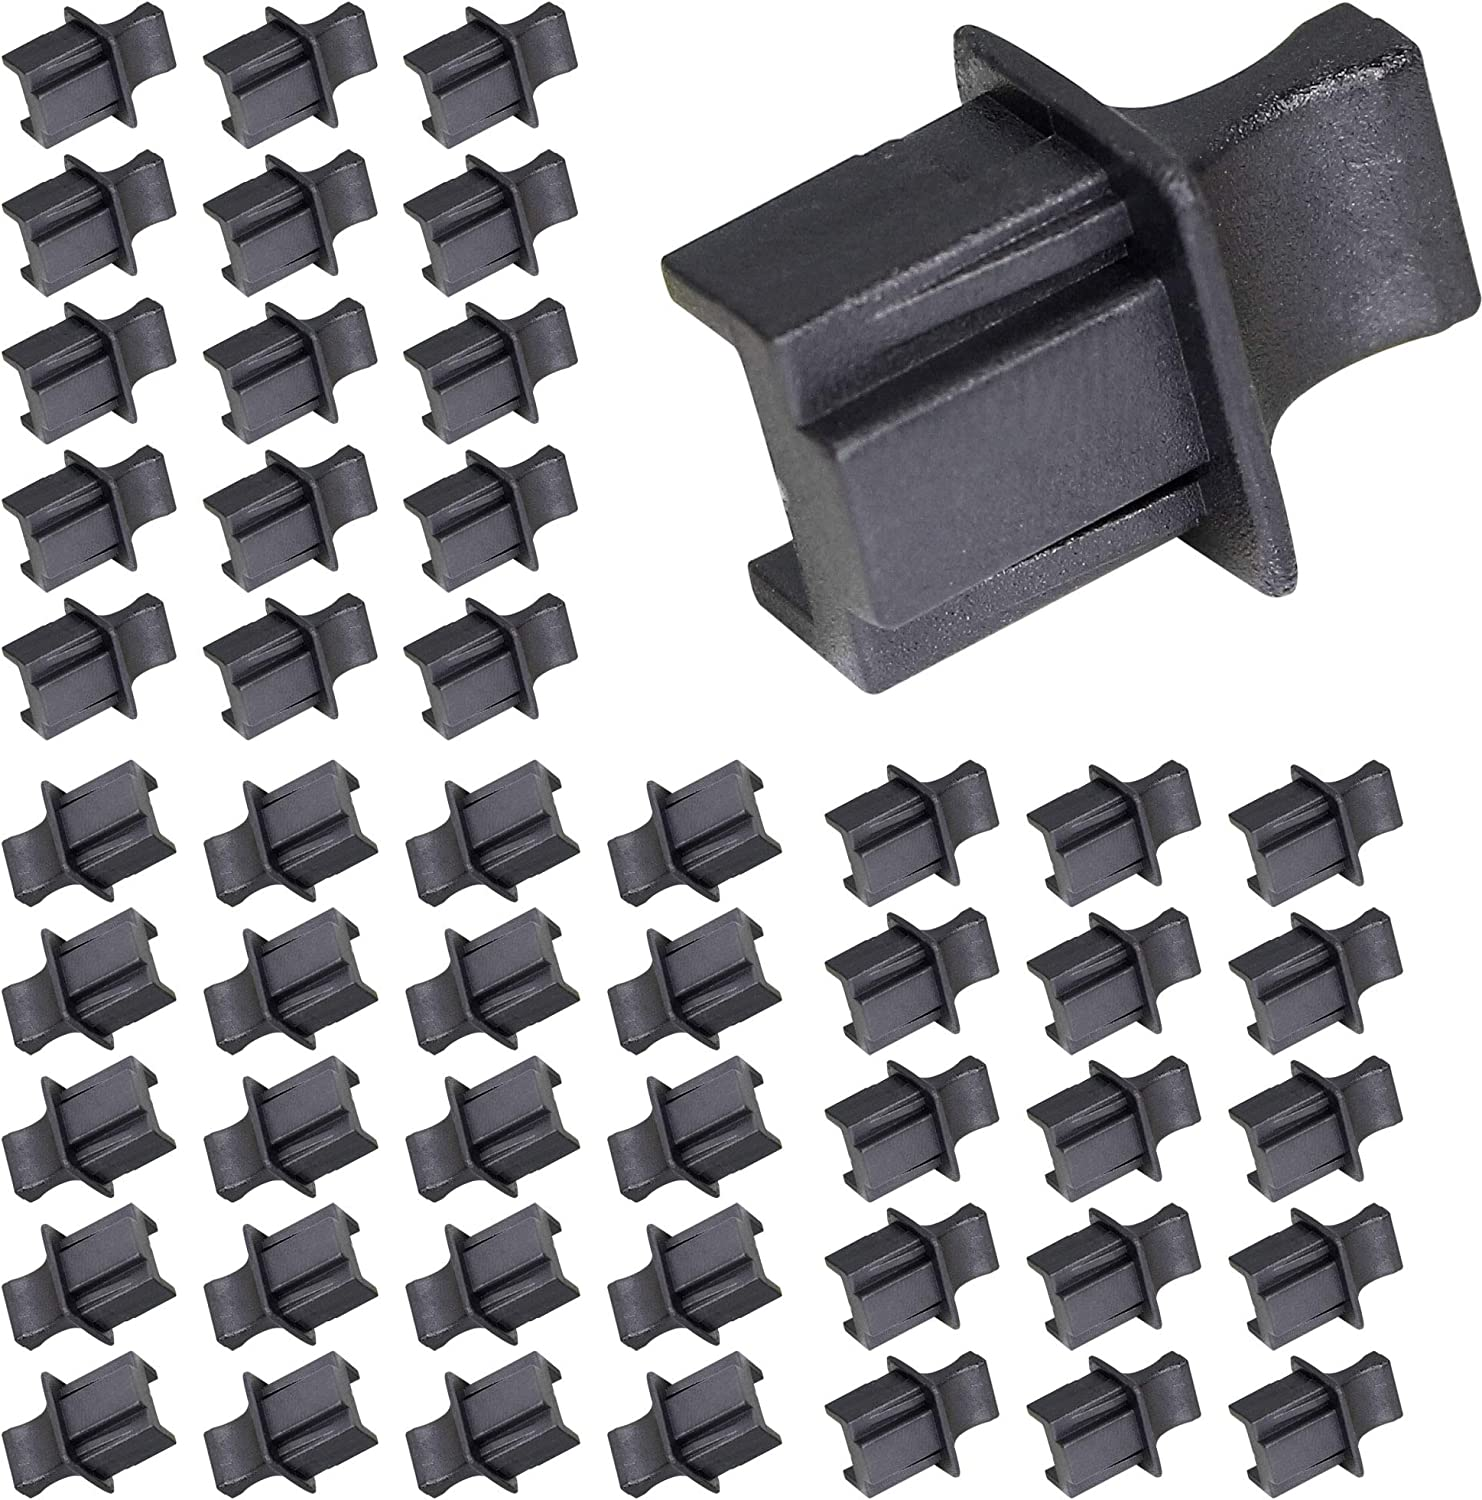 50PCS RJ45 In stock Anti Dust Cover Cap Ranking TOP13 Hub Ethernet Protector P Protects